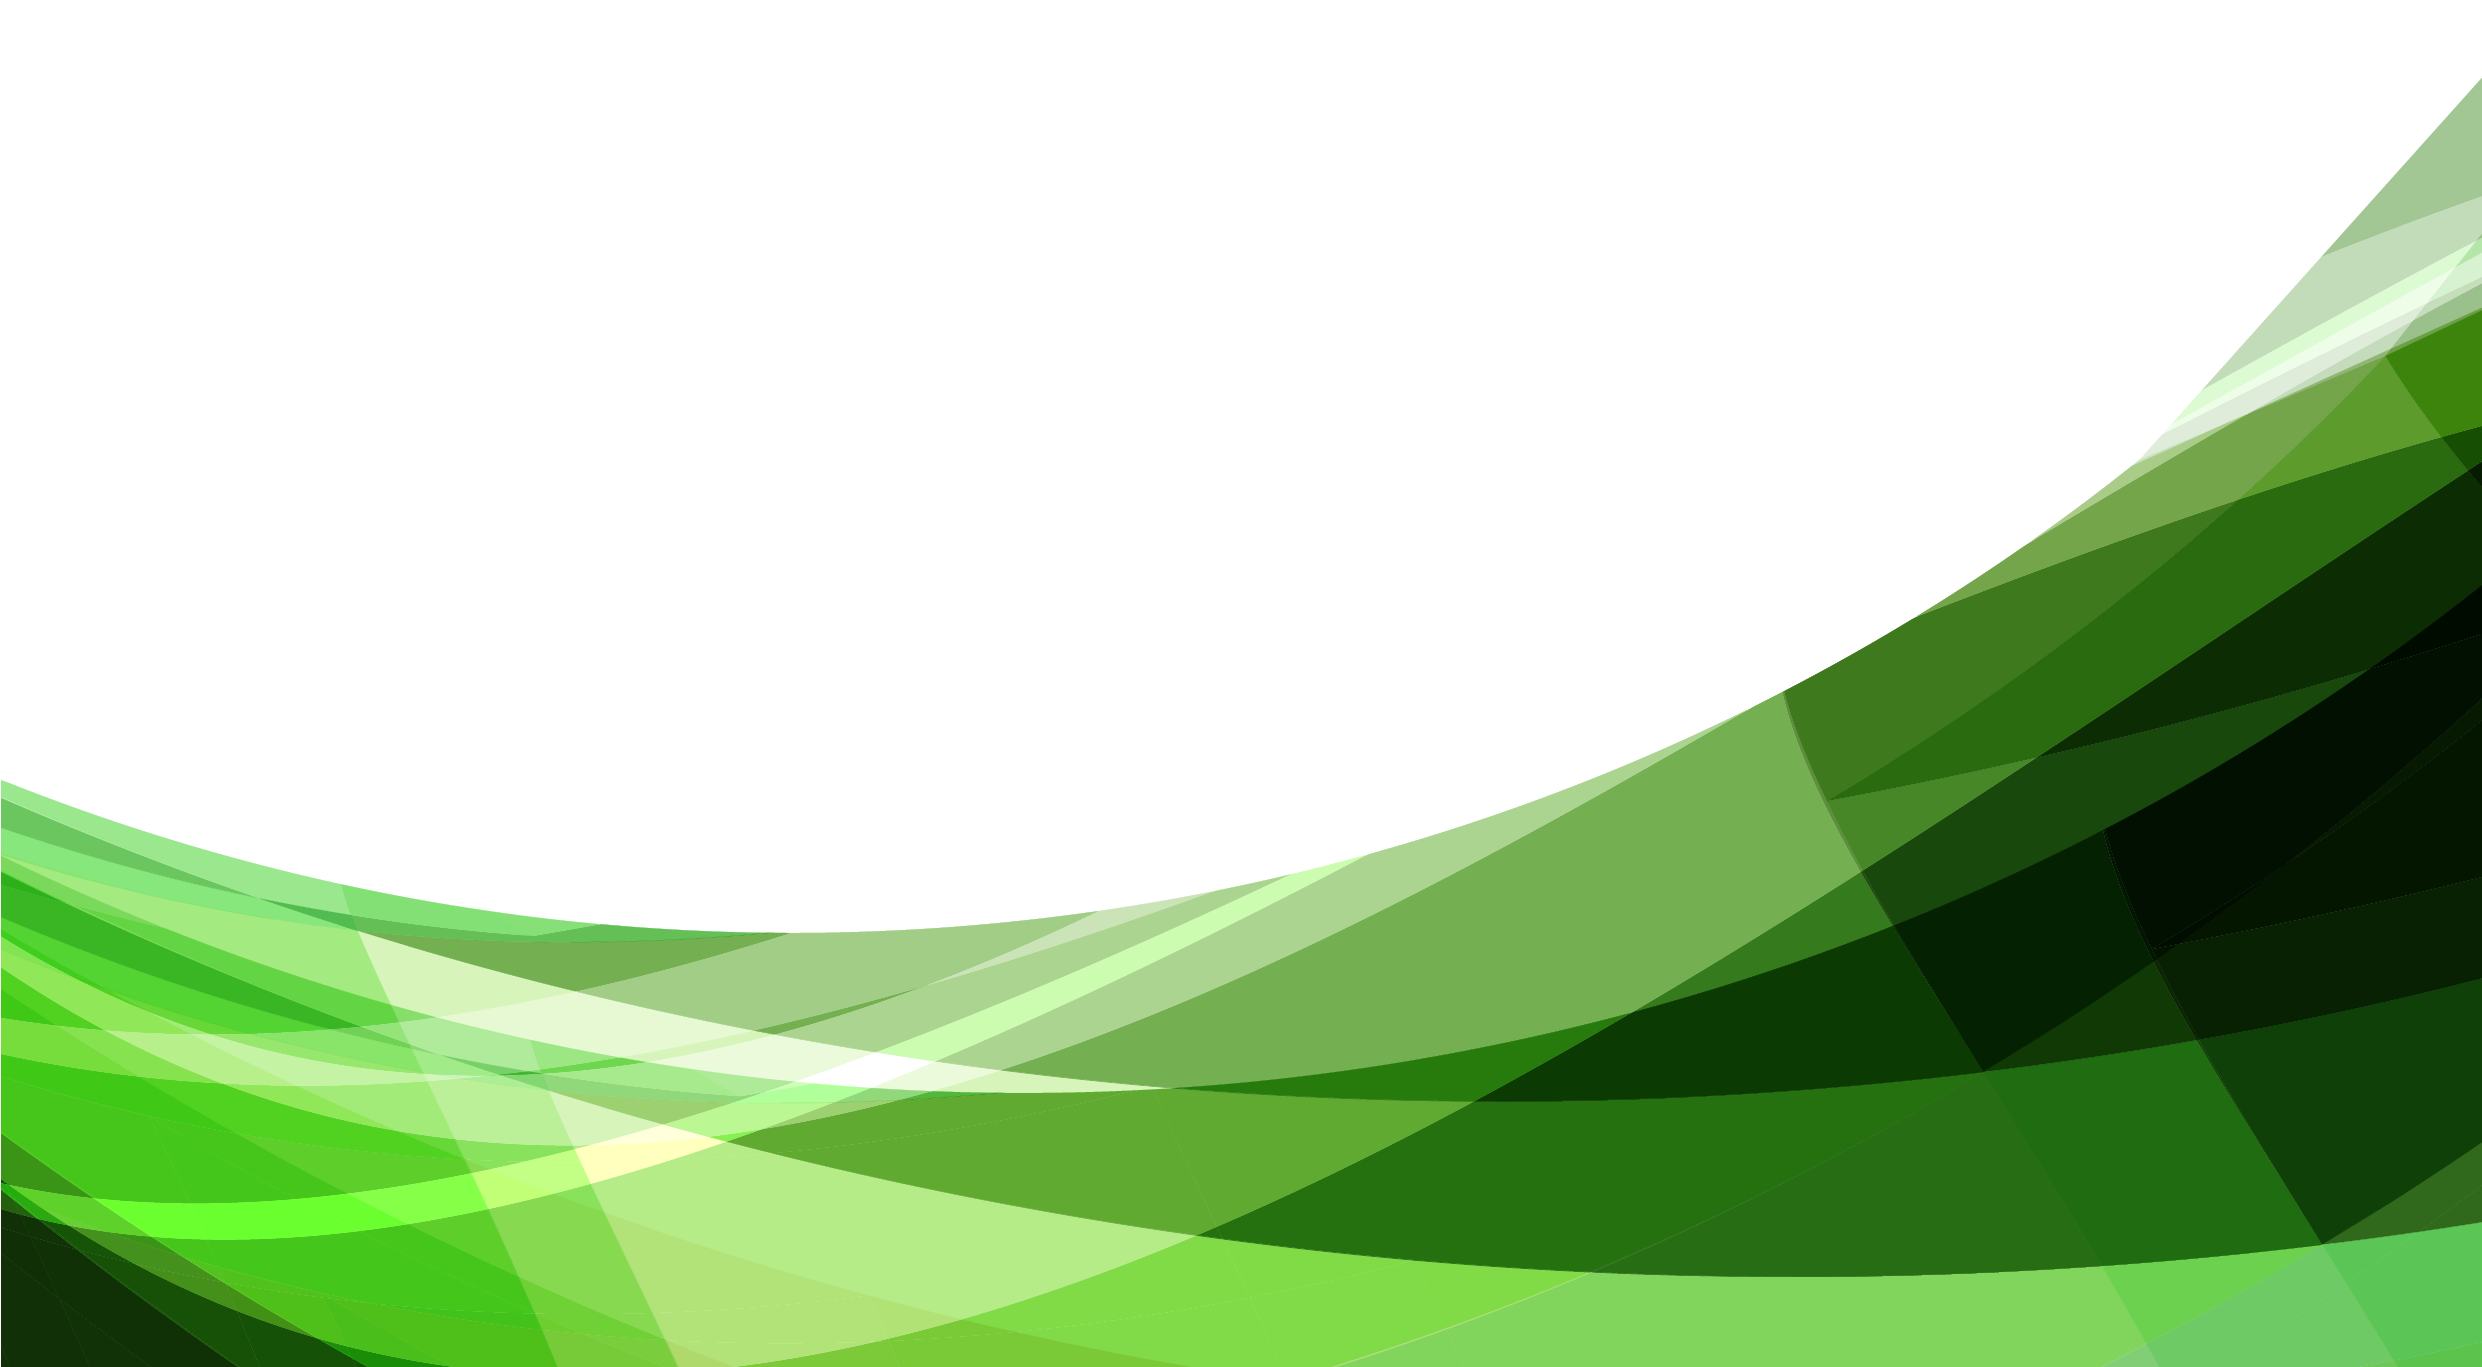 Green background download free clip art with a transparent.